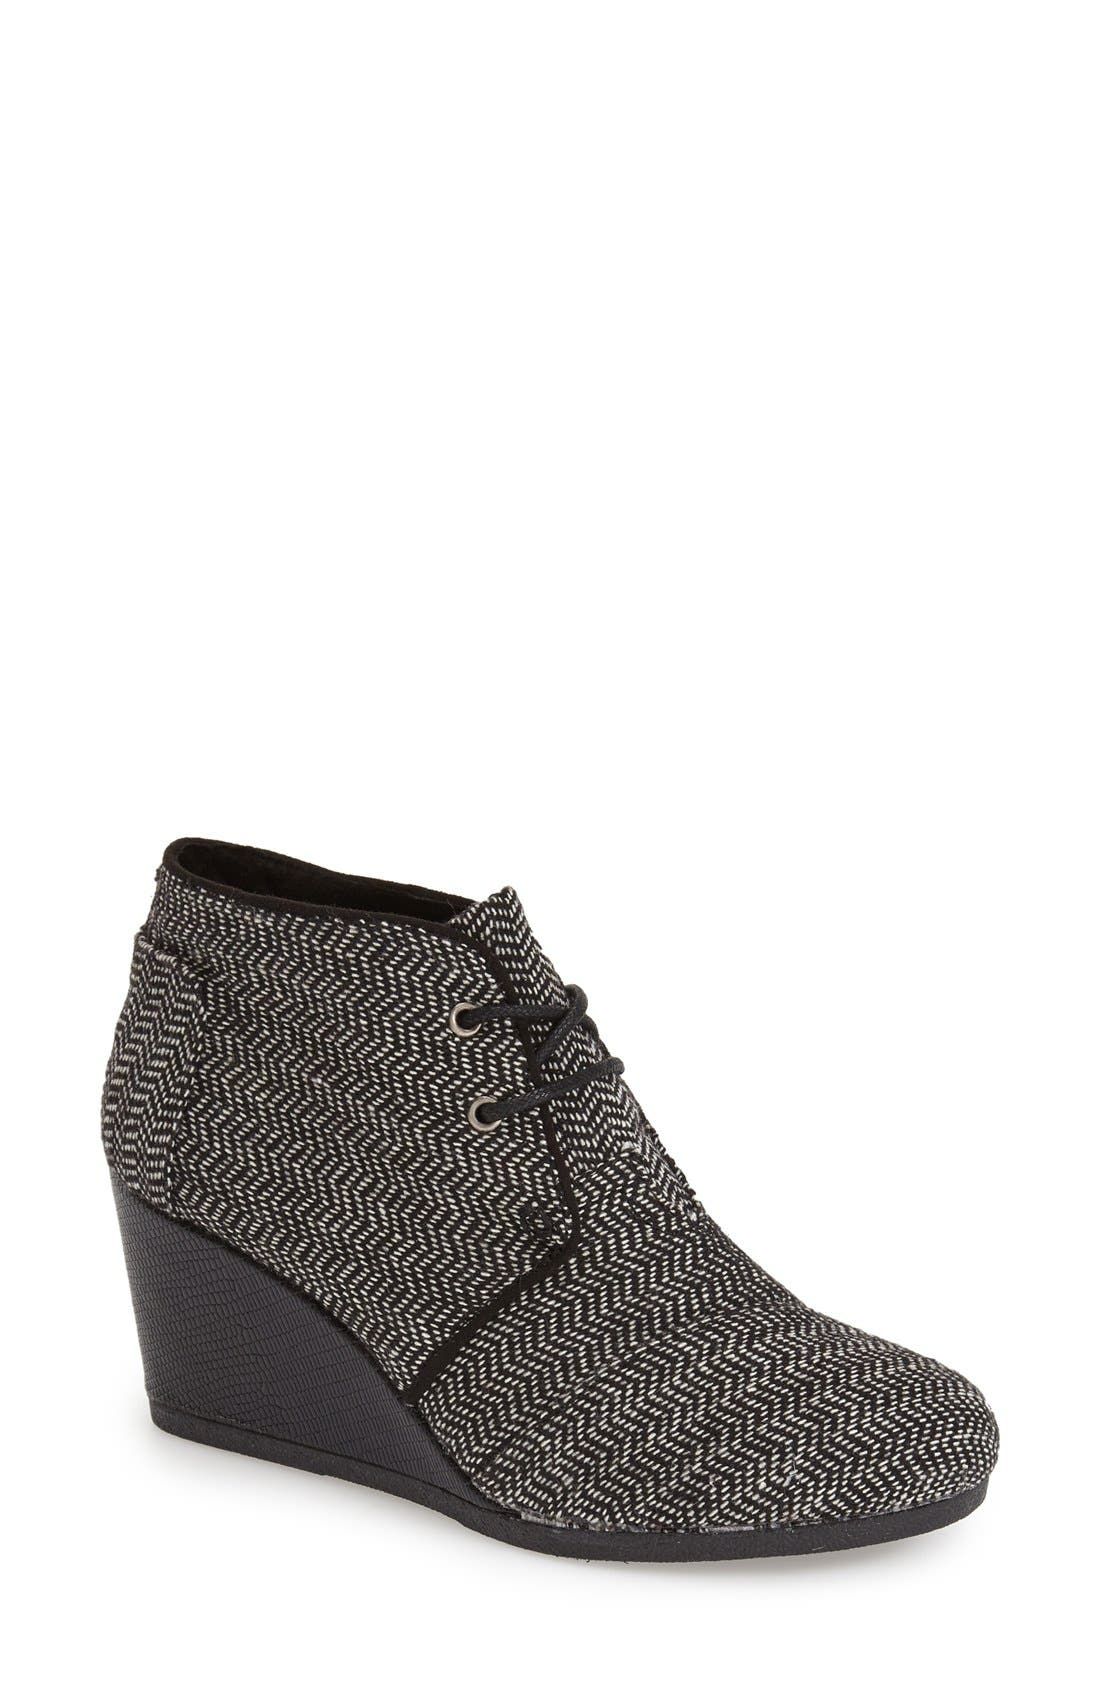 Main Image - TOMS 'Desert' Wedge Bootie (Women)